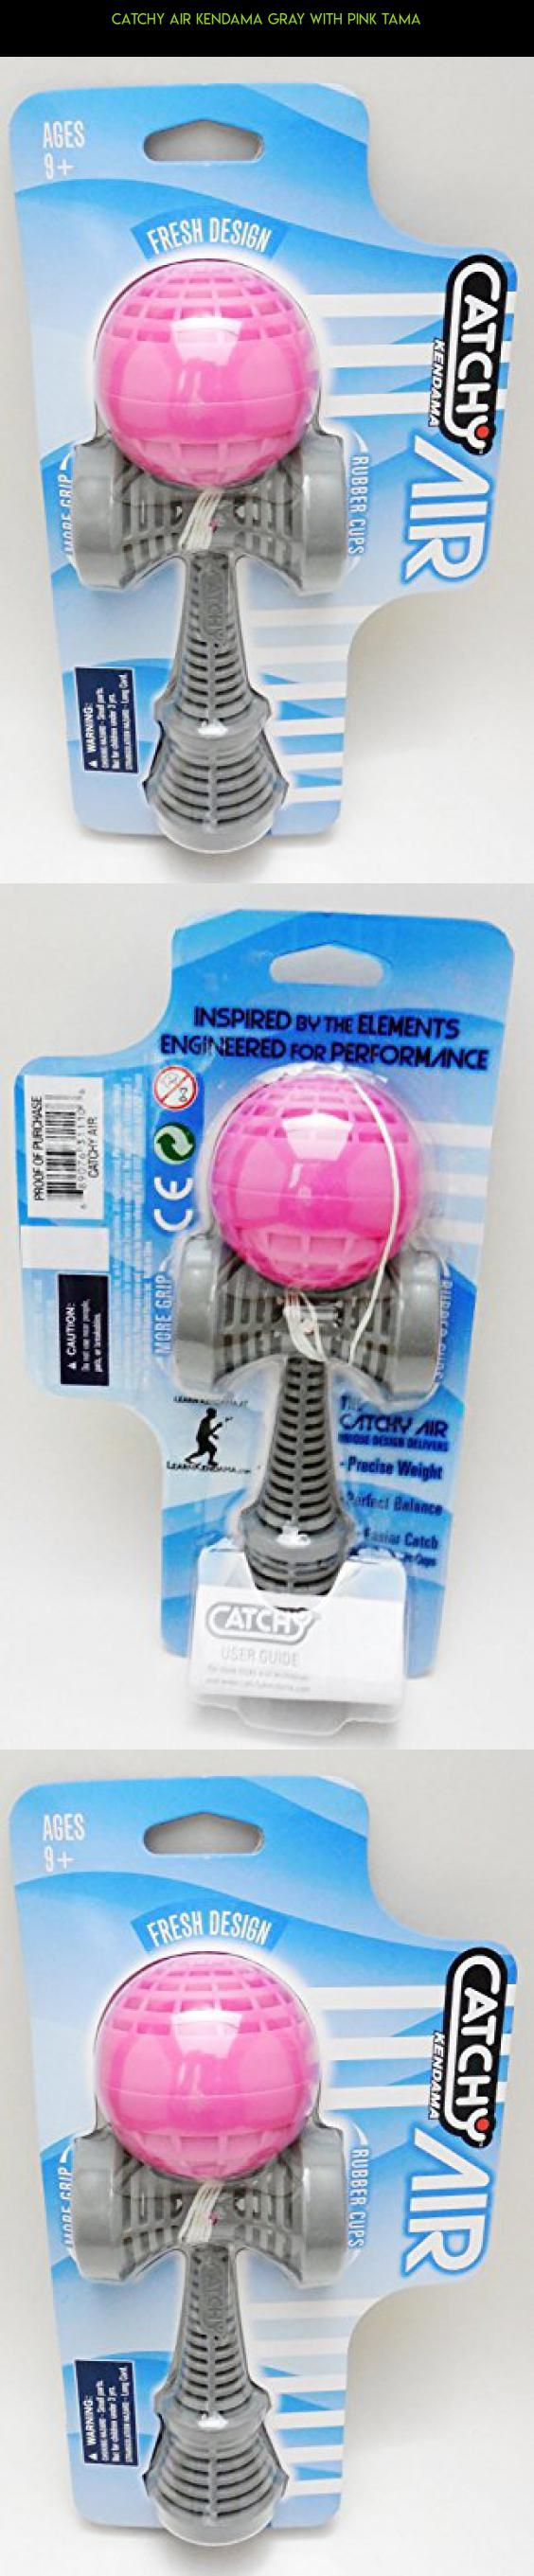 Catchy Air Kendama Gray with Pink Tama #fpv #parts #racing #tech #technology #shopping #drone #kit #gray #kendama #gadgets #camera #products #plans